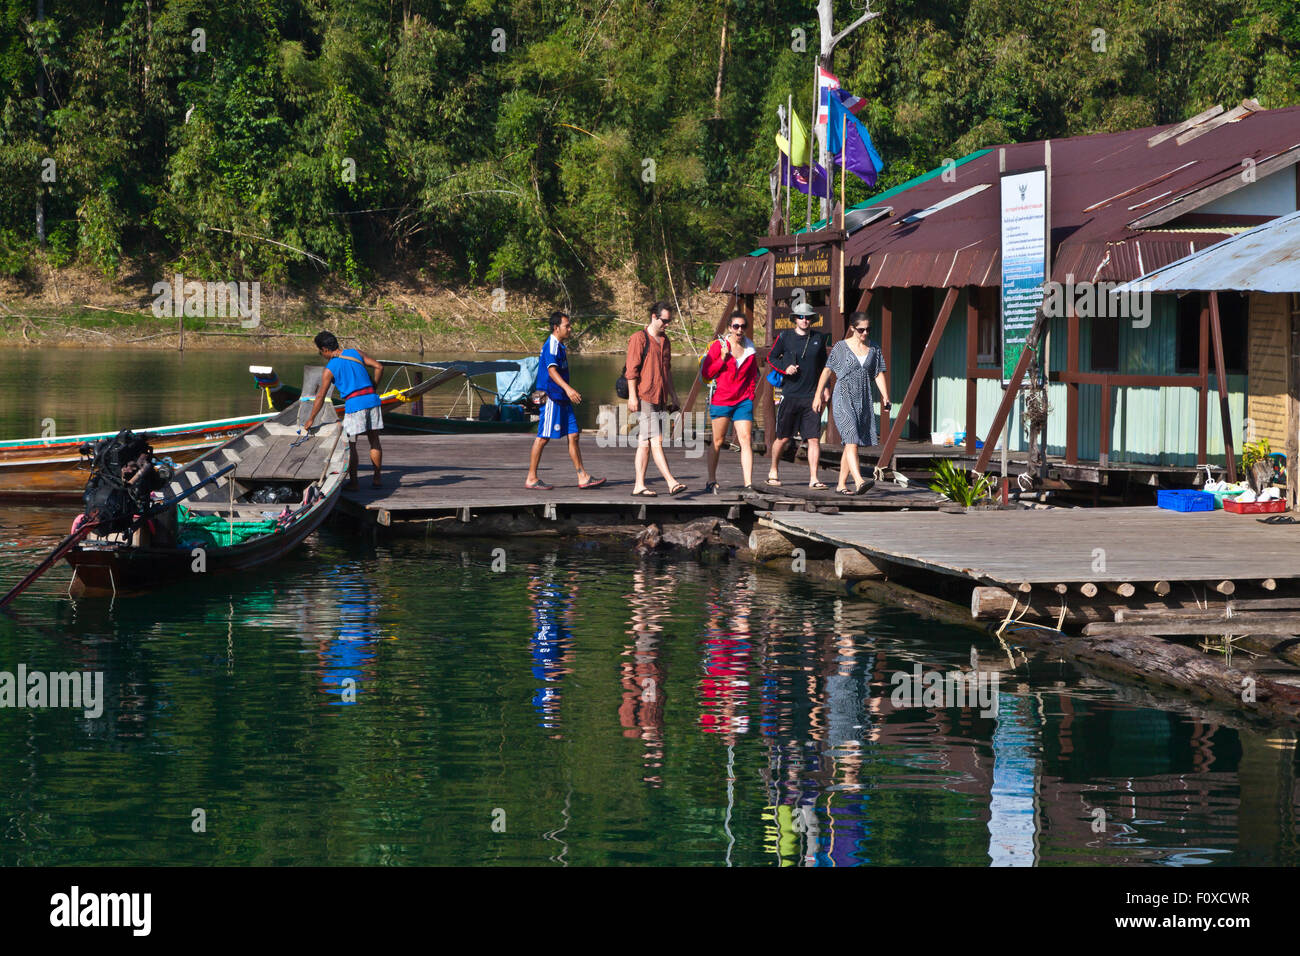 Guests arrive at TAM GIA RAFT HOUSE on CHEOW EN LAKE in KHAO SOK NATIONAL PARK - THAILAND - Stock Image